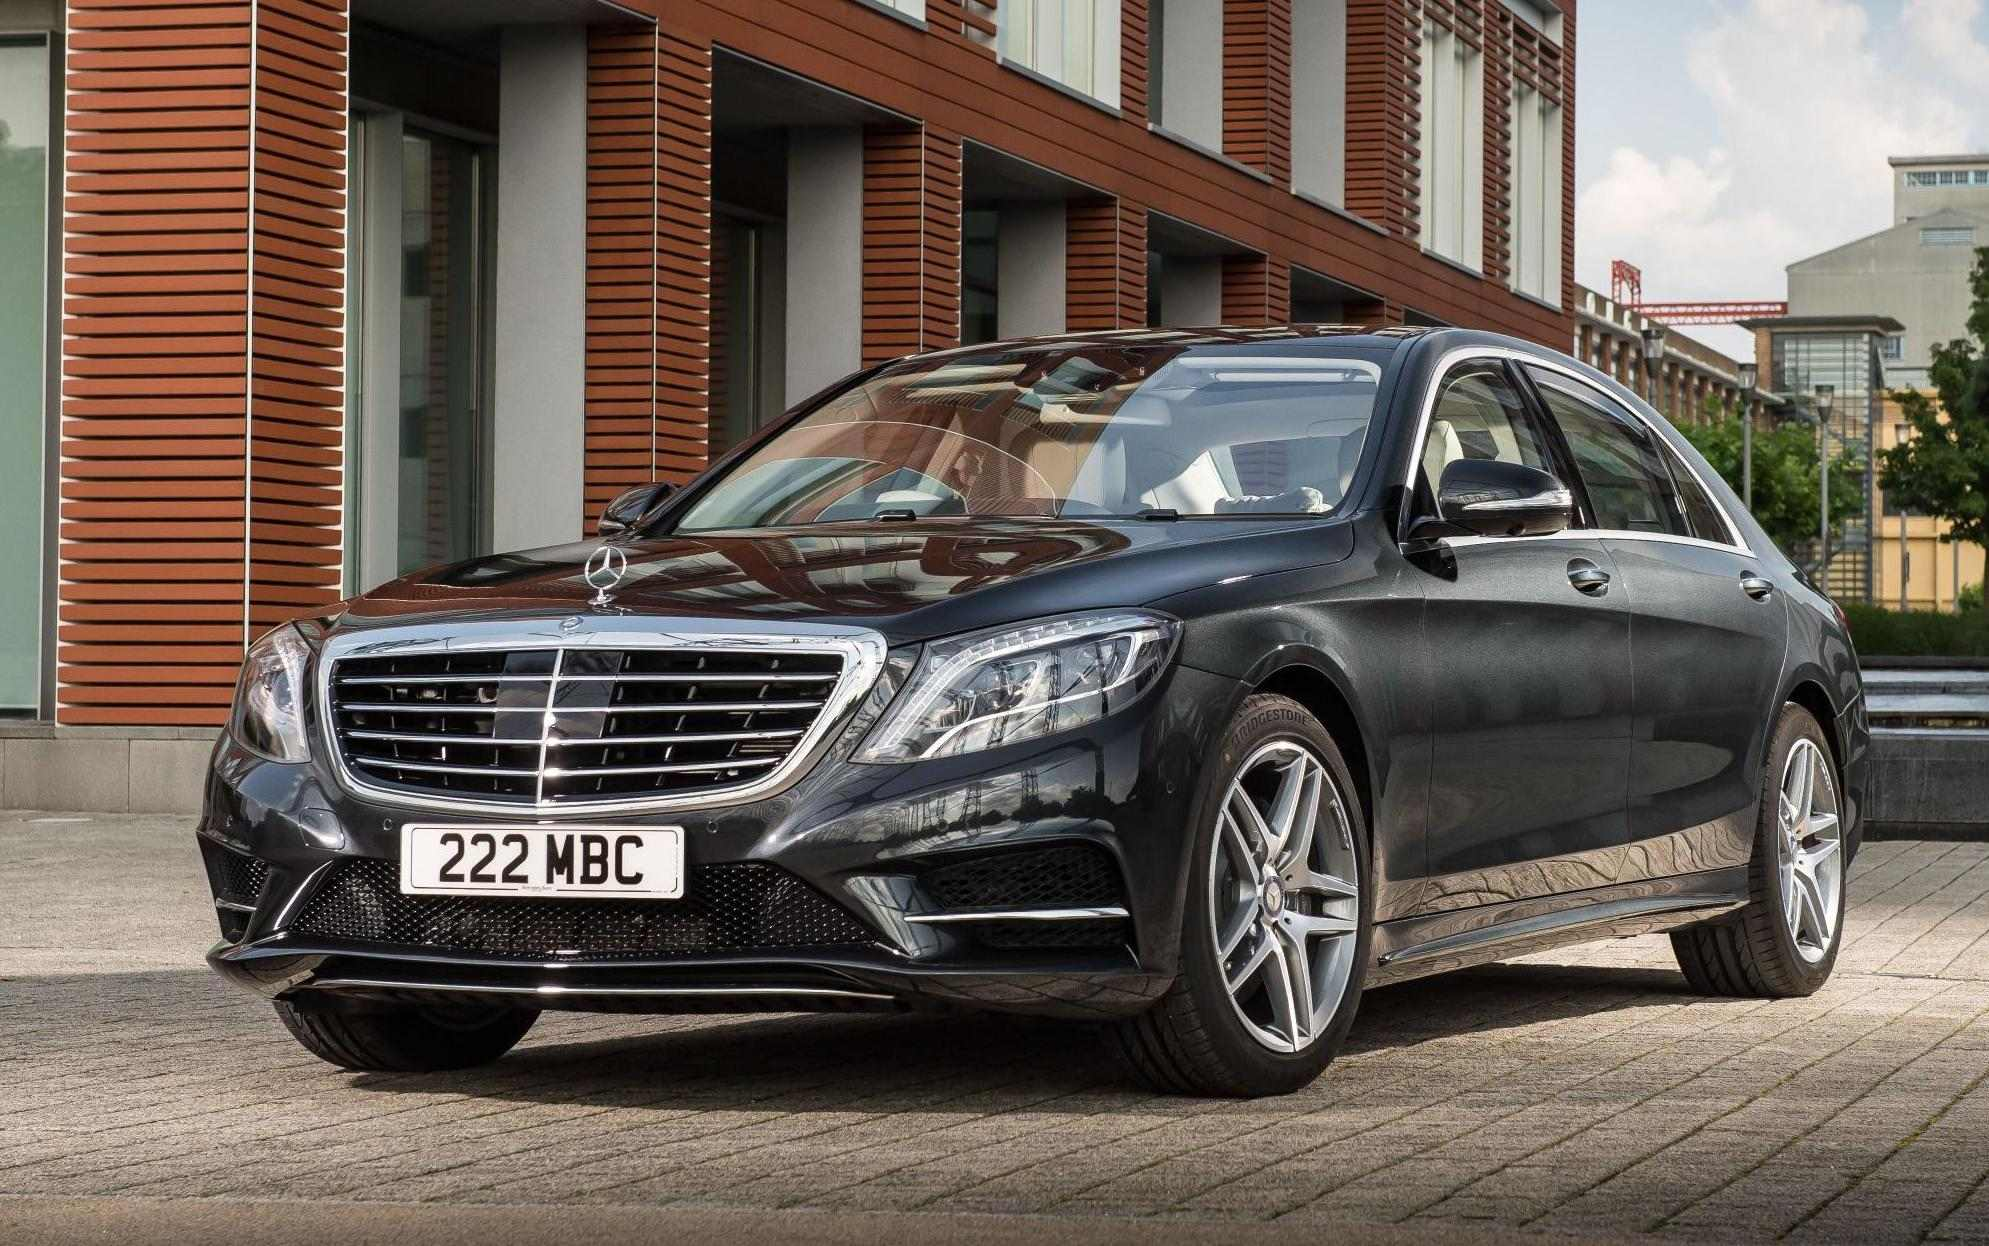 face-lifted-new-mercedes-benz-s-class-350-cdi-launched-earlier-this-year--2